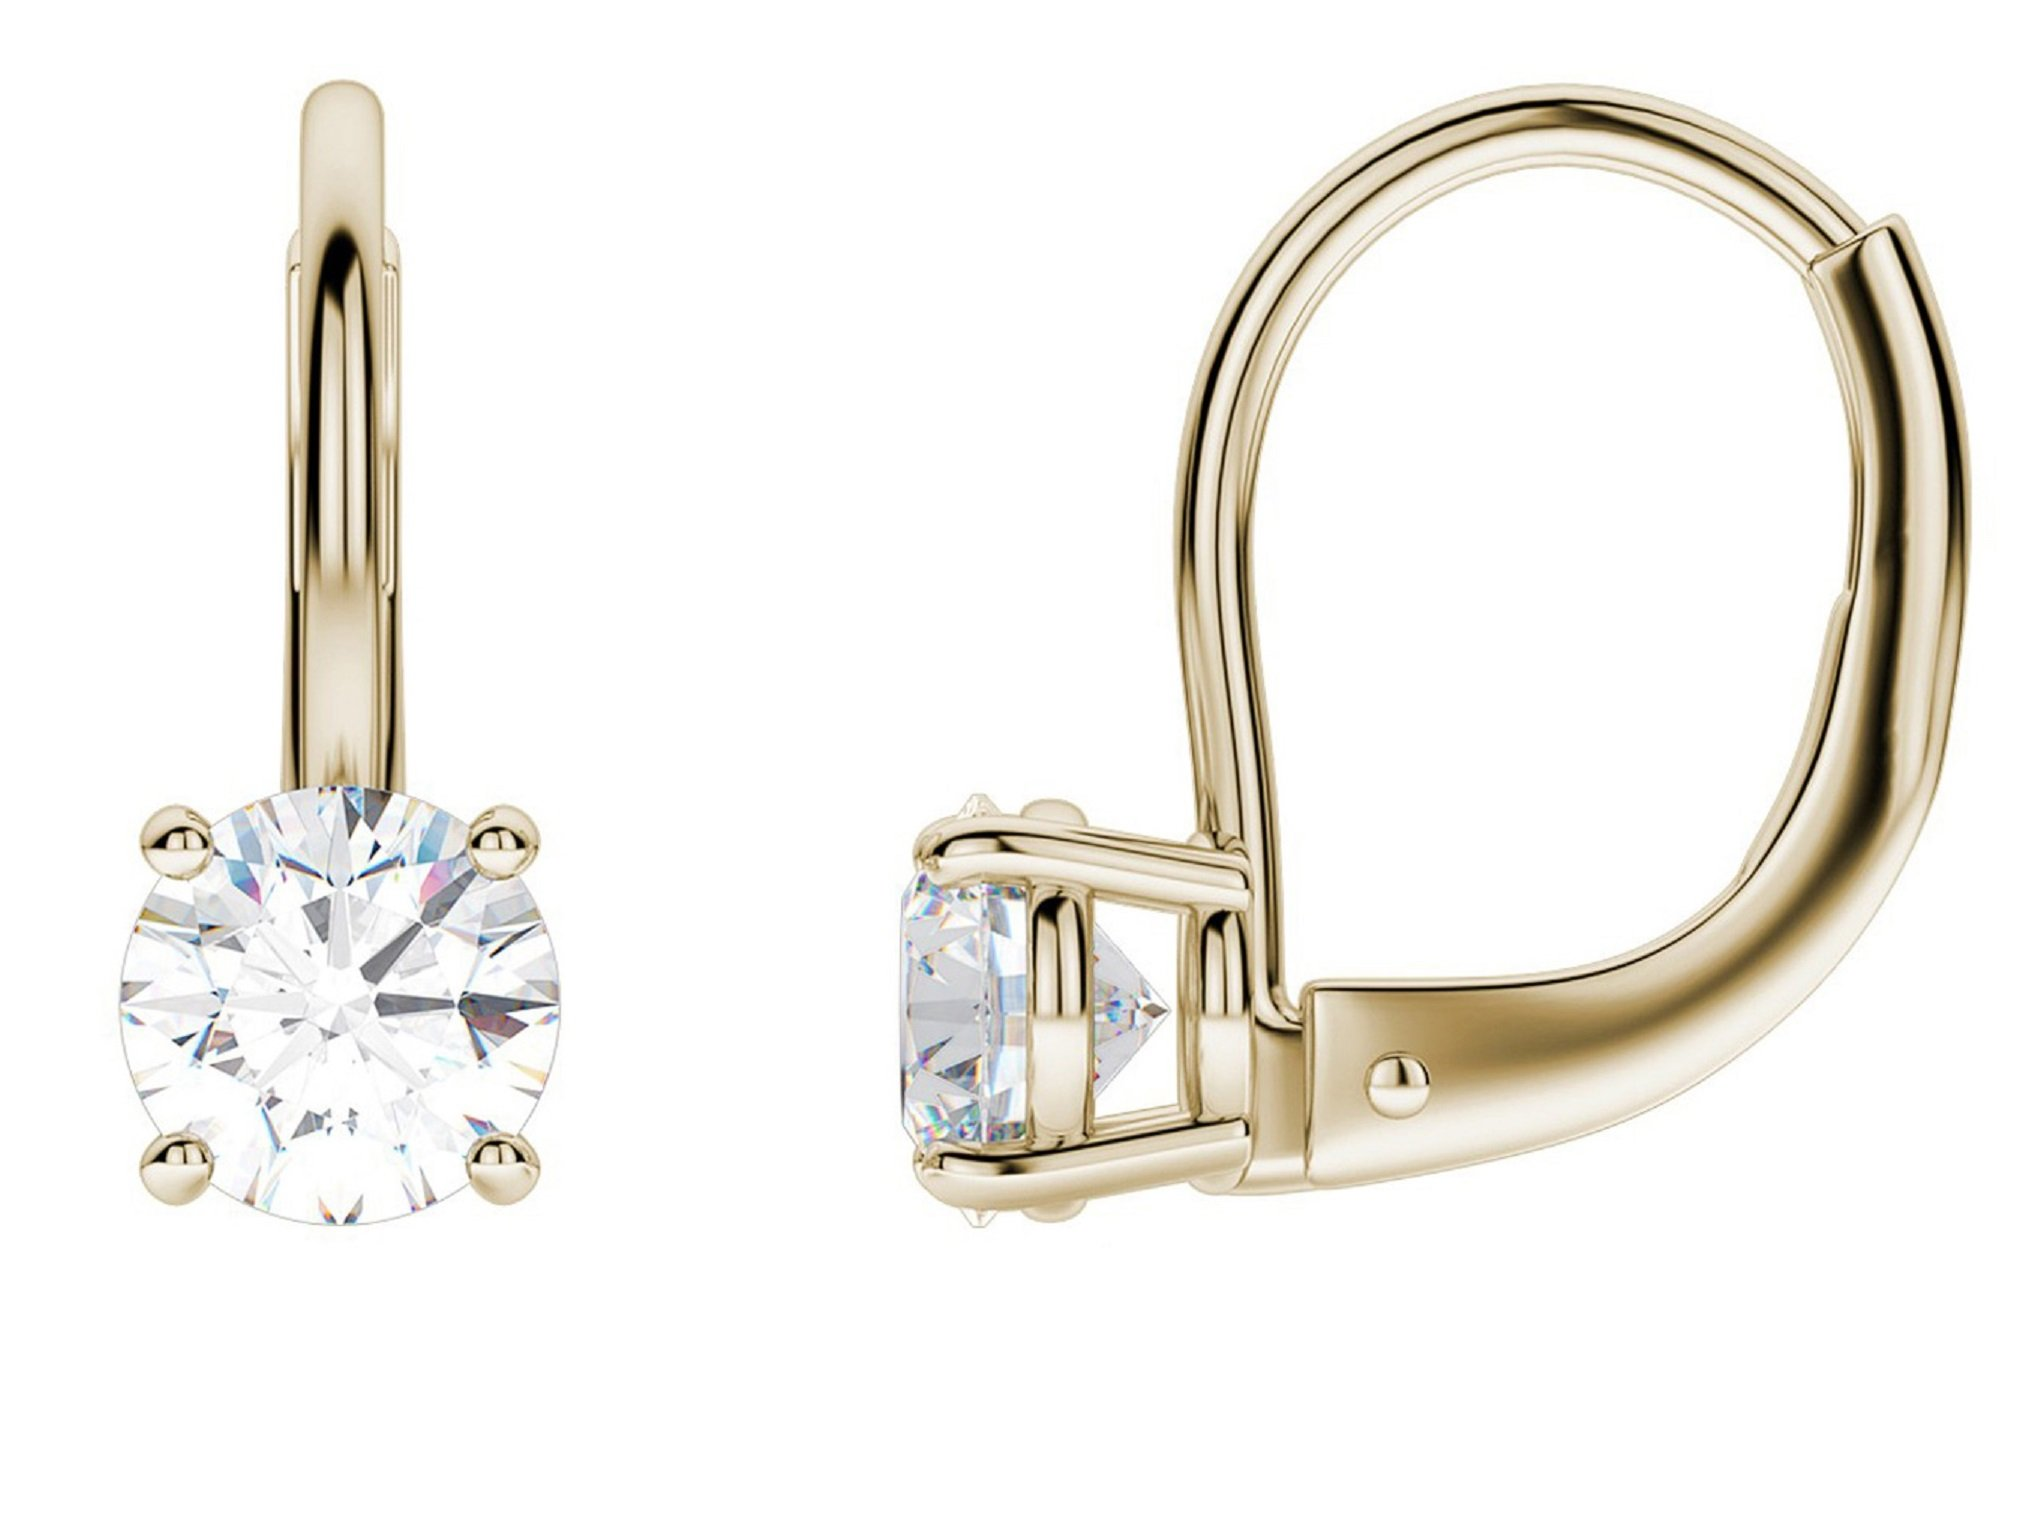 2.0 CT BRILLIANT ROUND CUT Simulated Diamond CZ Solitaire DROP DANGLE LEVERBACK EARRINGS 14K Yellow GOLD